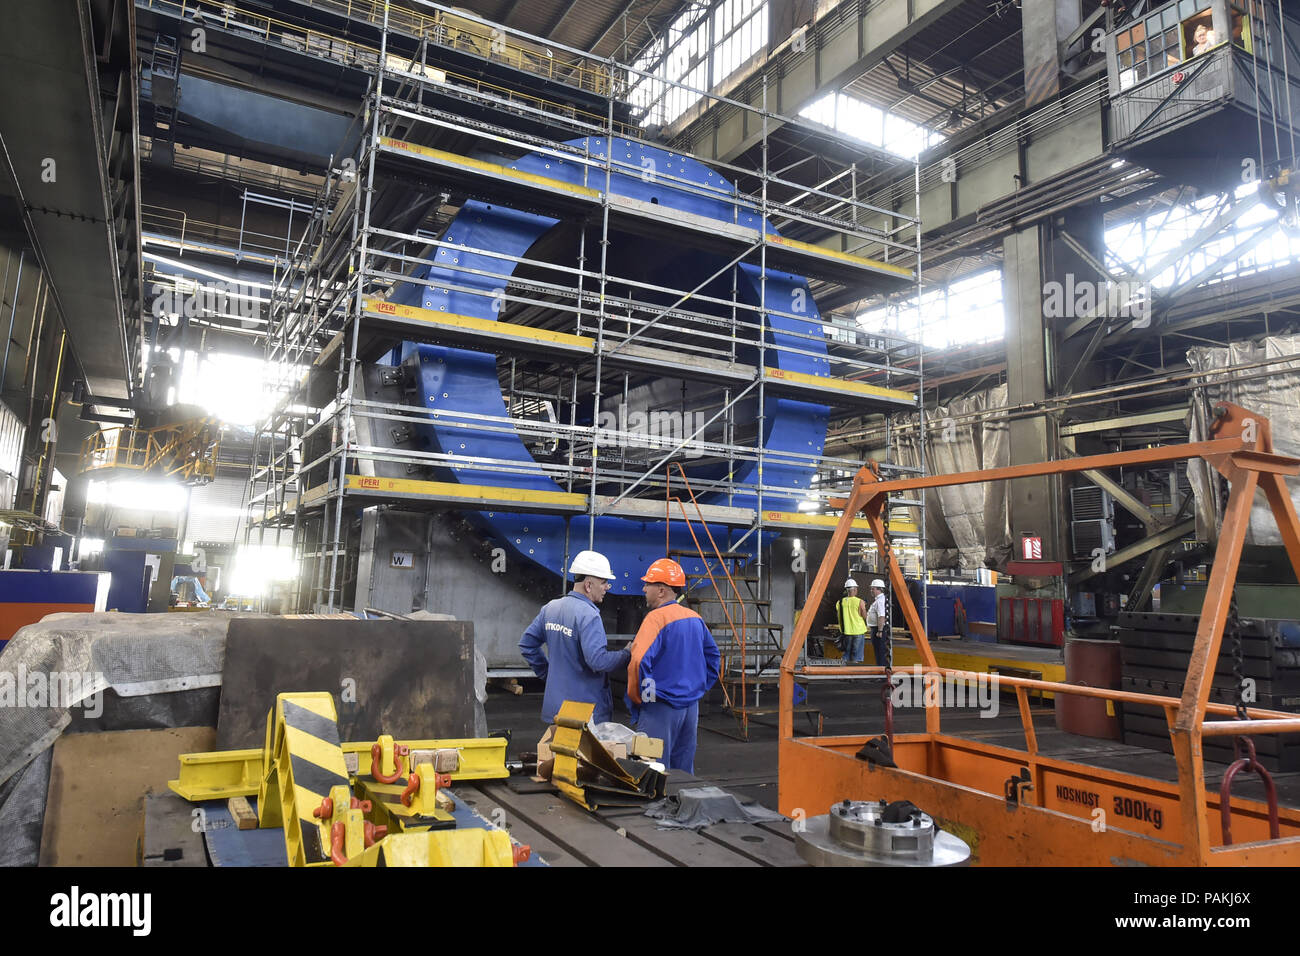 Ostrava, Czech Republic. 24th July, 2018. Press briefing on completion of prestigious project and providing magnet parts of particle accelerator for international nuclear research at Joint Institute for Nuclear Research (JINR) based in Russia took place in Vitkovice Heavy Machinery (VHM) production plant on July 24, 2018, in Ostrava, Czech Republic. (CTK Jaroslav Ozana) - Stock Image